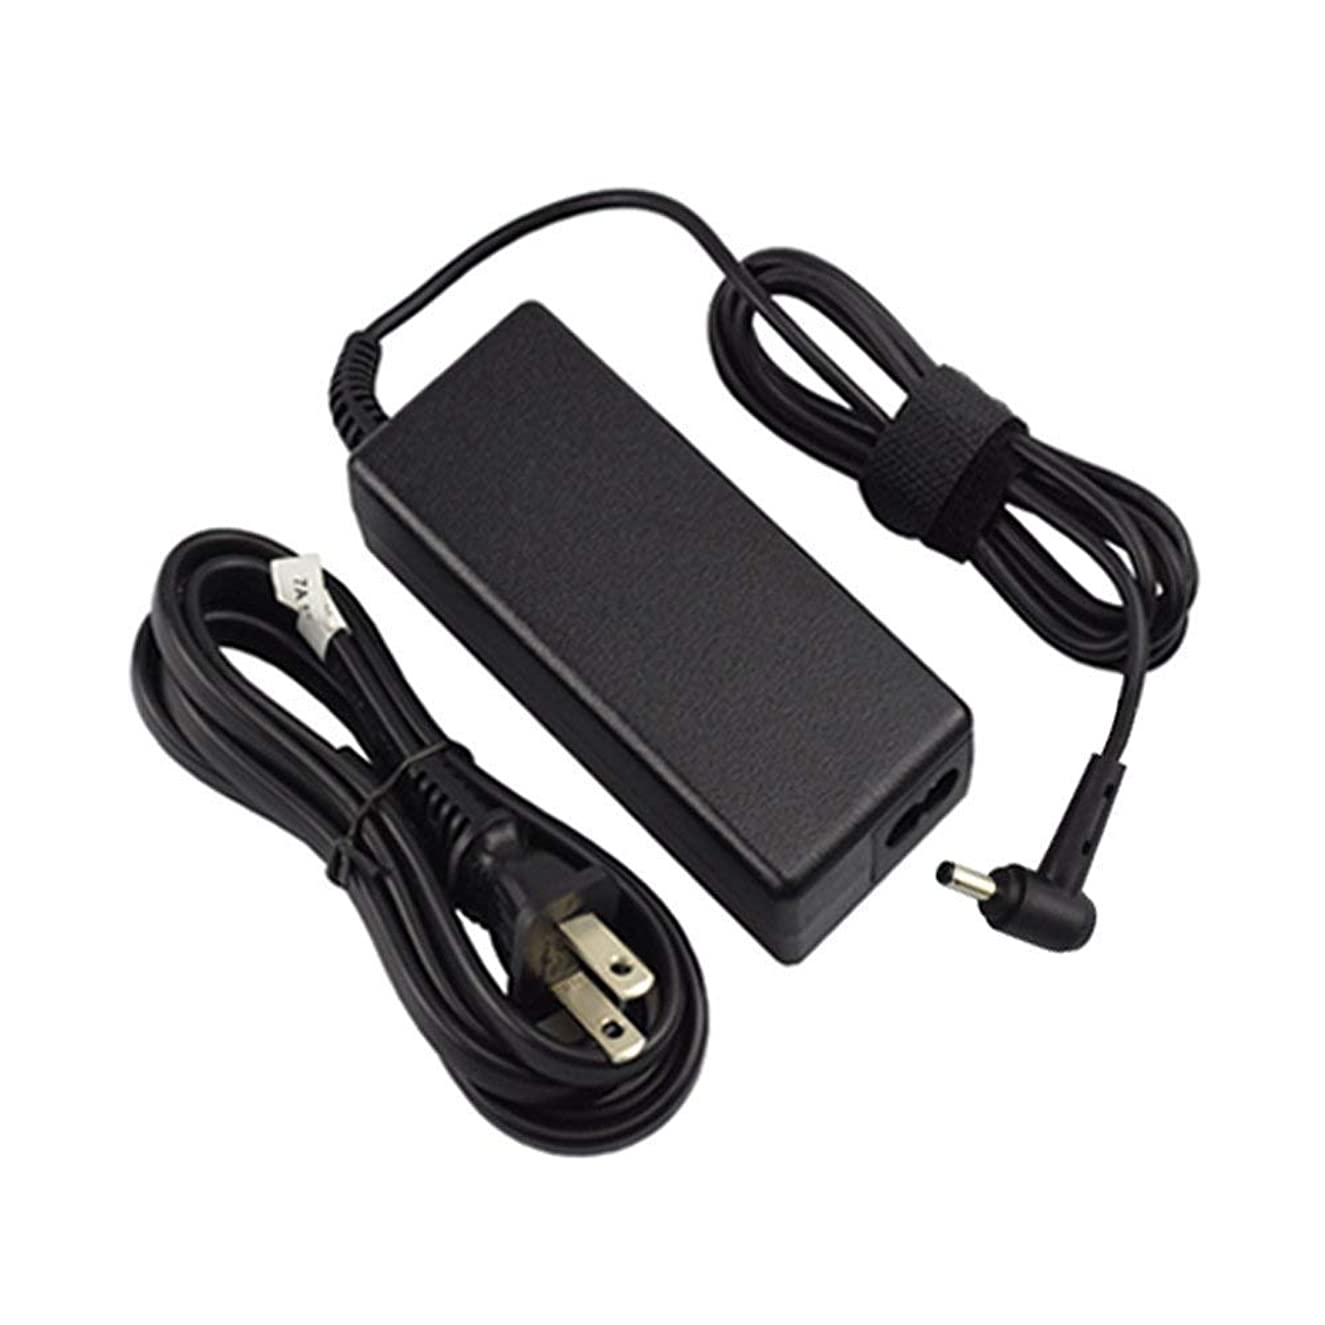 [UL Listed] Superer AC Charger Compatible with Toshiba Satellite S55 S55T S55-C5274 S55-C5280 S55T-B5273NR Laptop Adapter Power Supply Cord